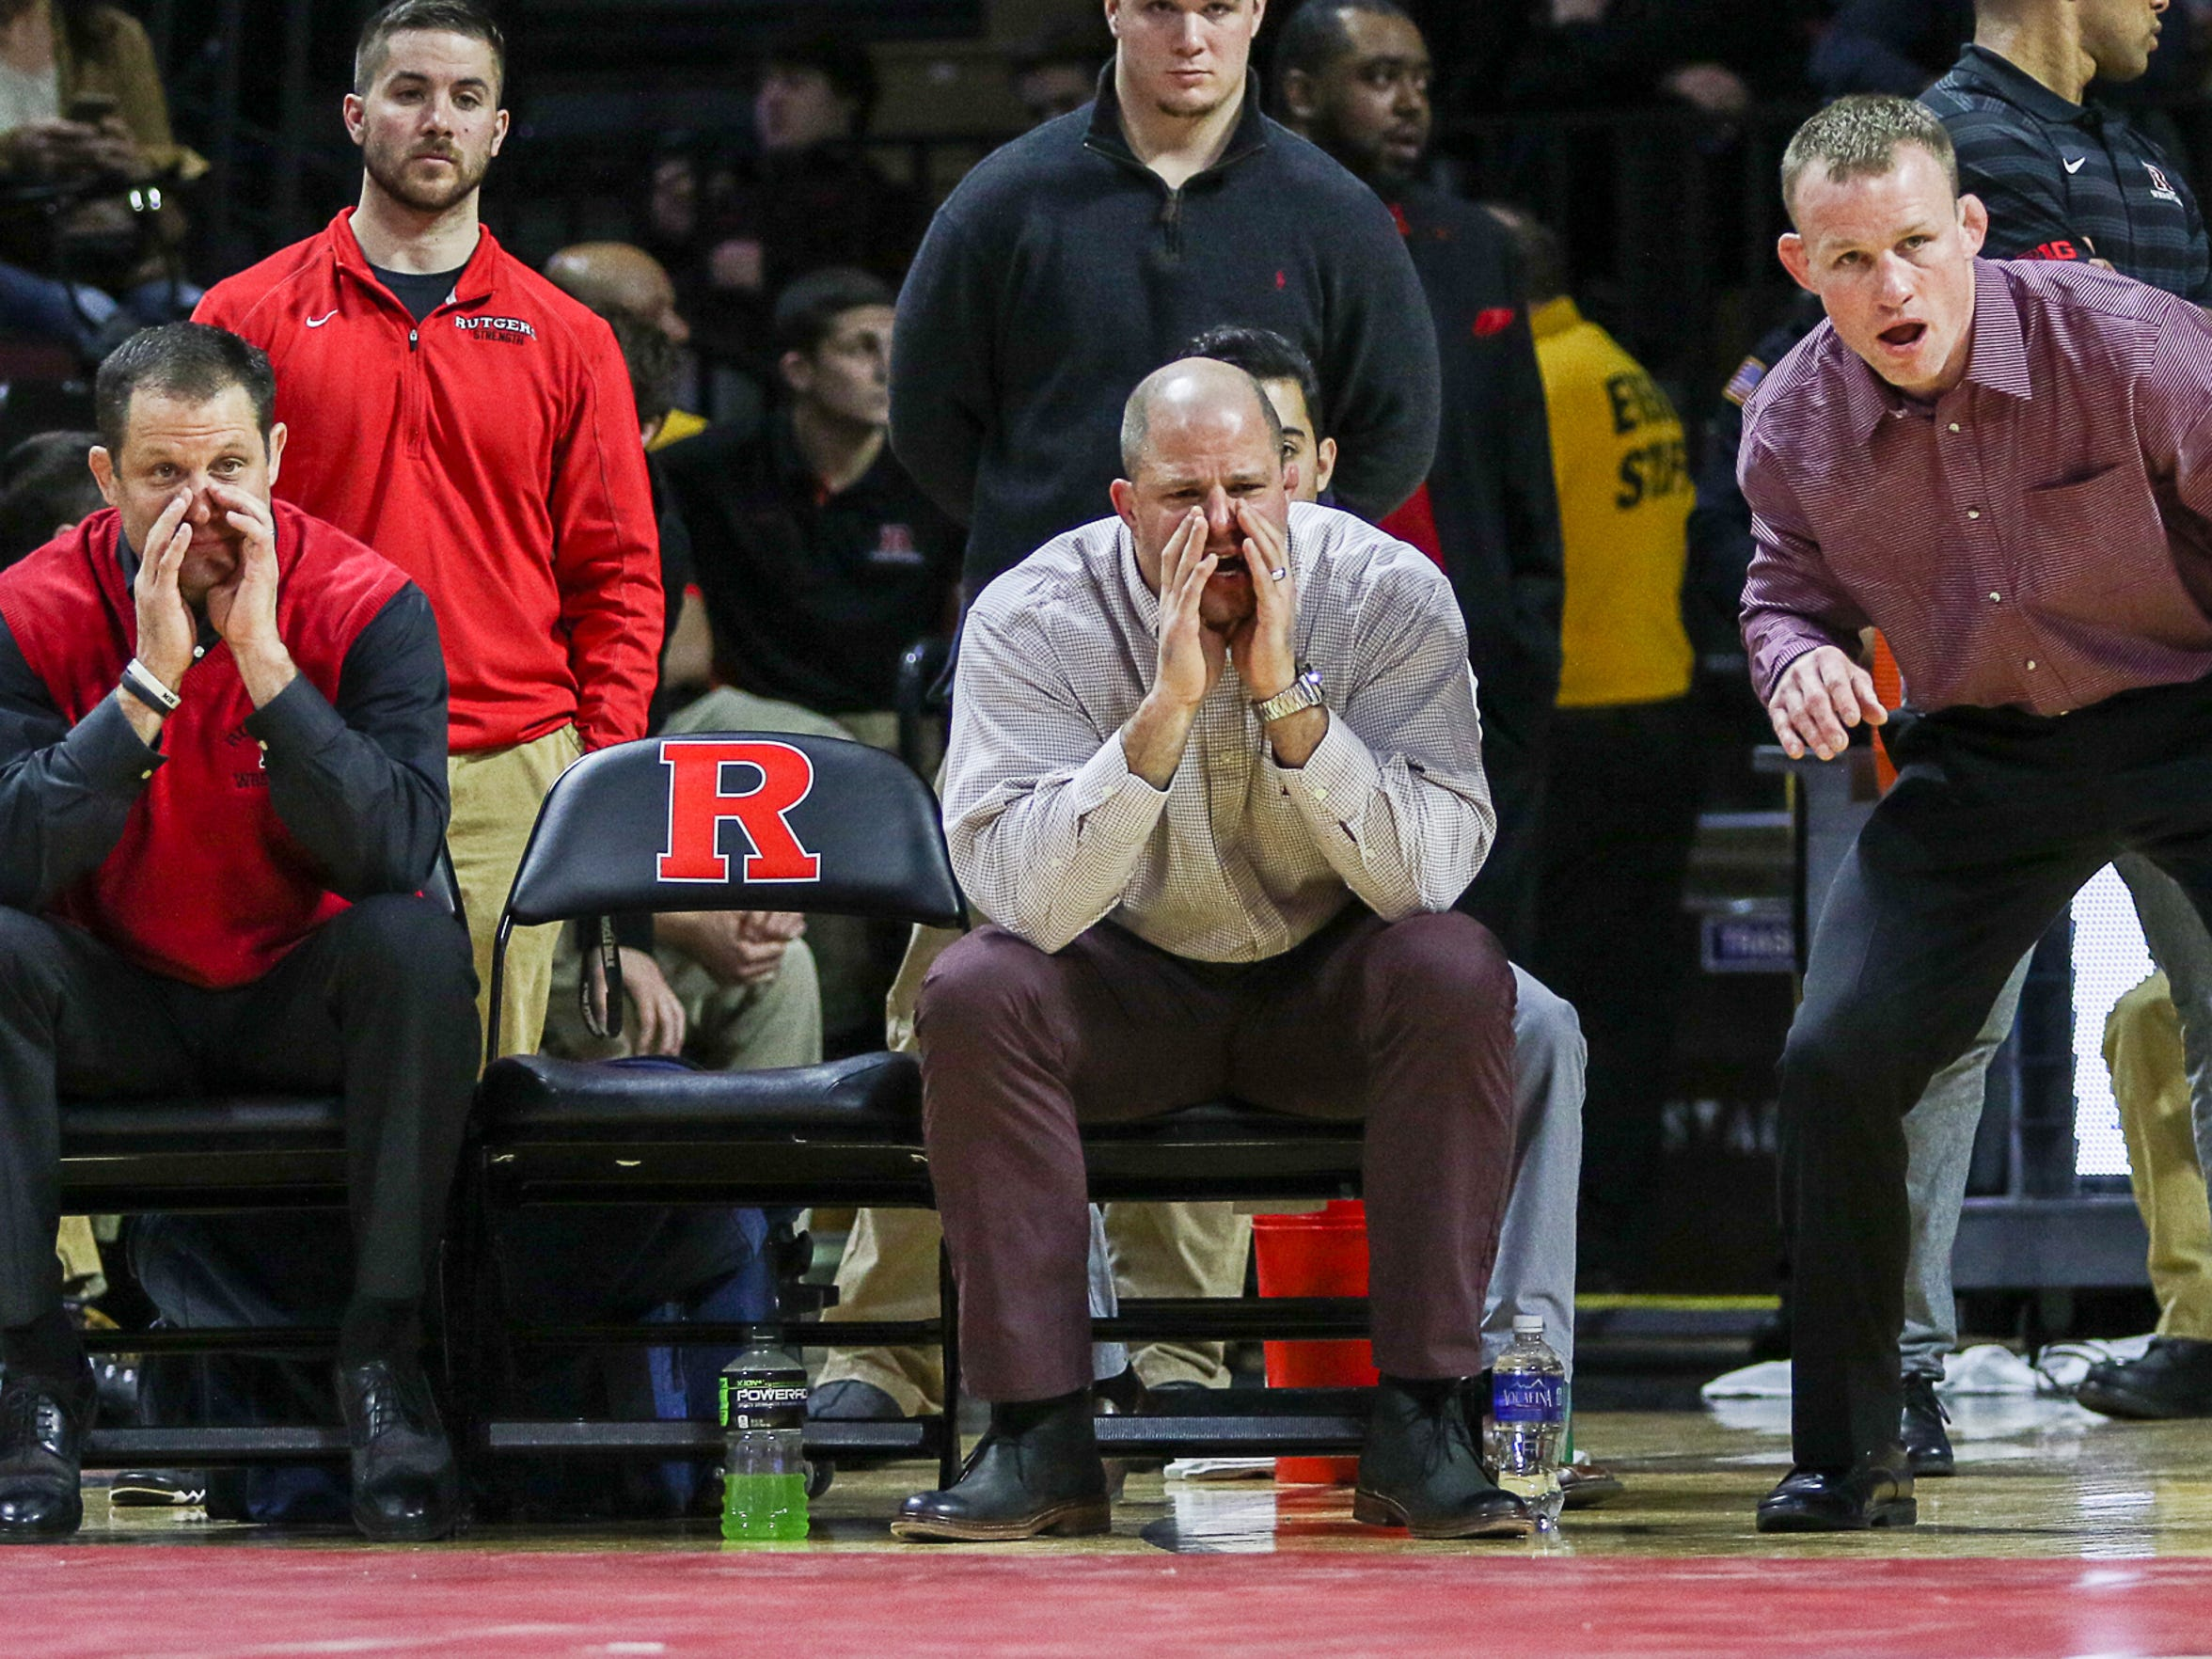 Rutgers coach Scott Goodale, assistant coach John Leonardis and associate head coach Donny Pritzlaff, pictured left to right, helped wrestling climb to a No. 6 national ranking this season.